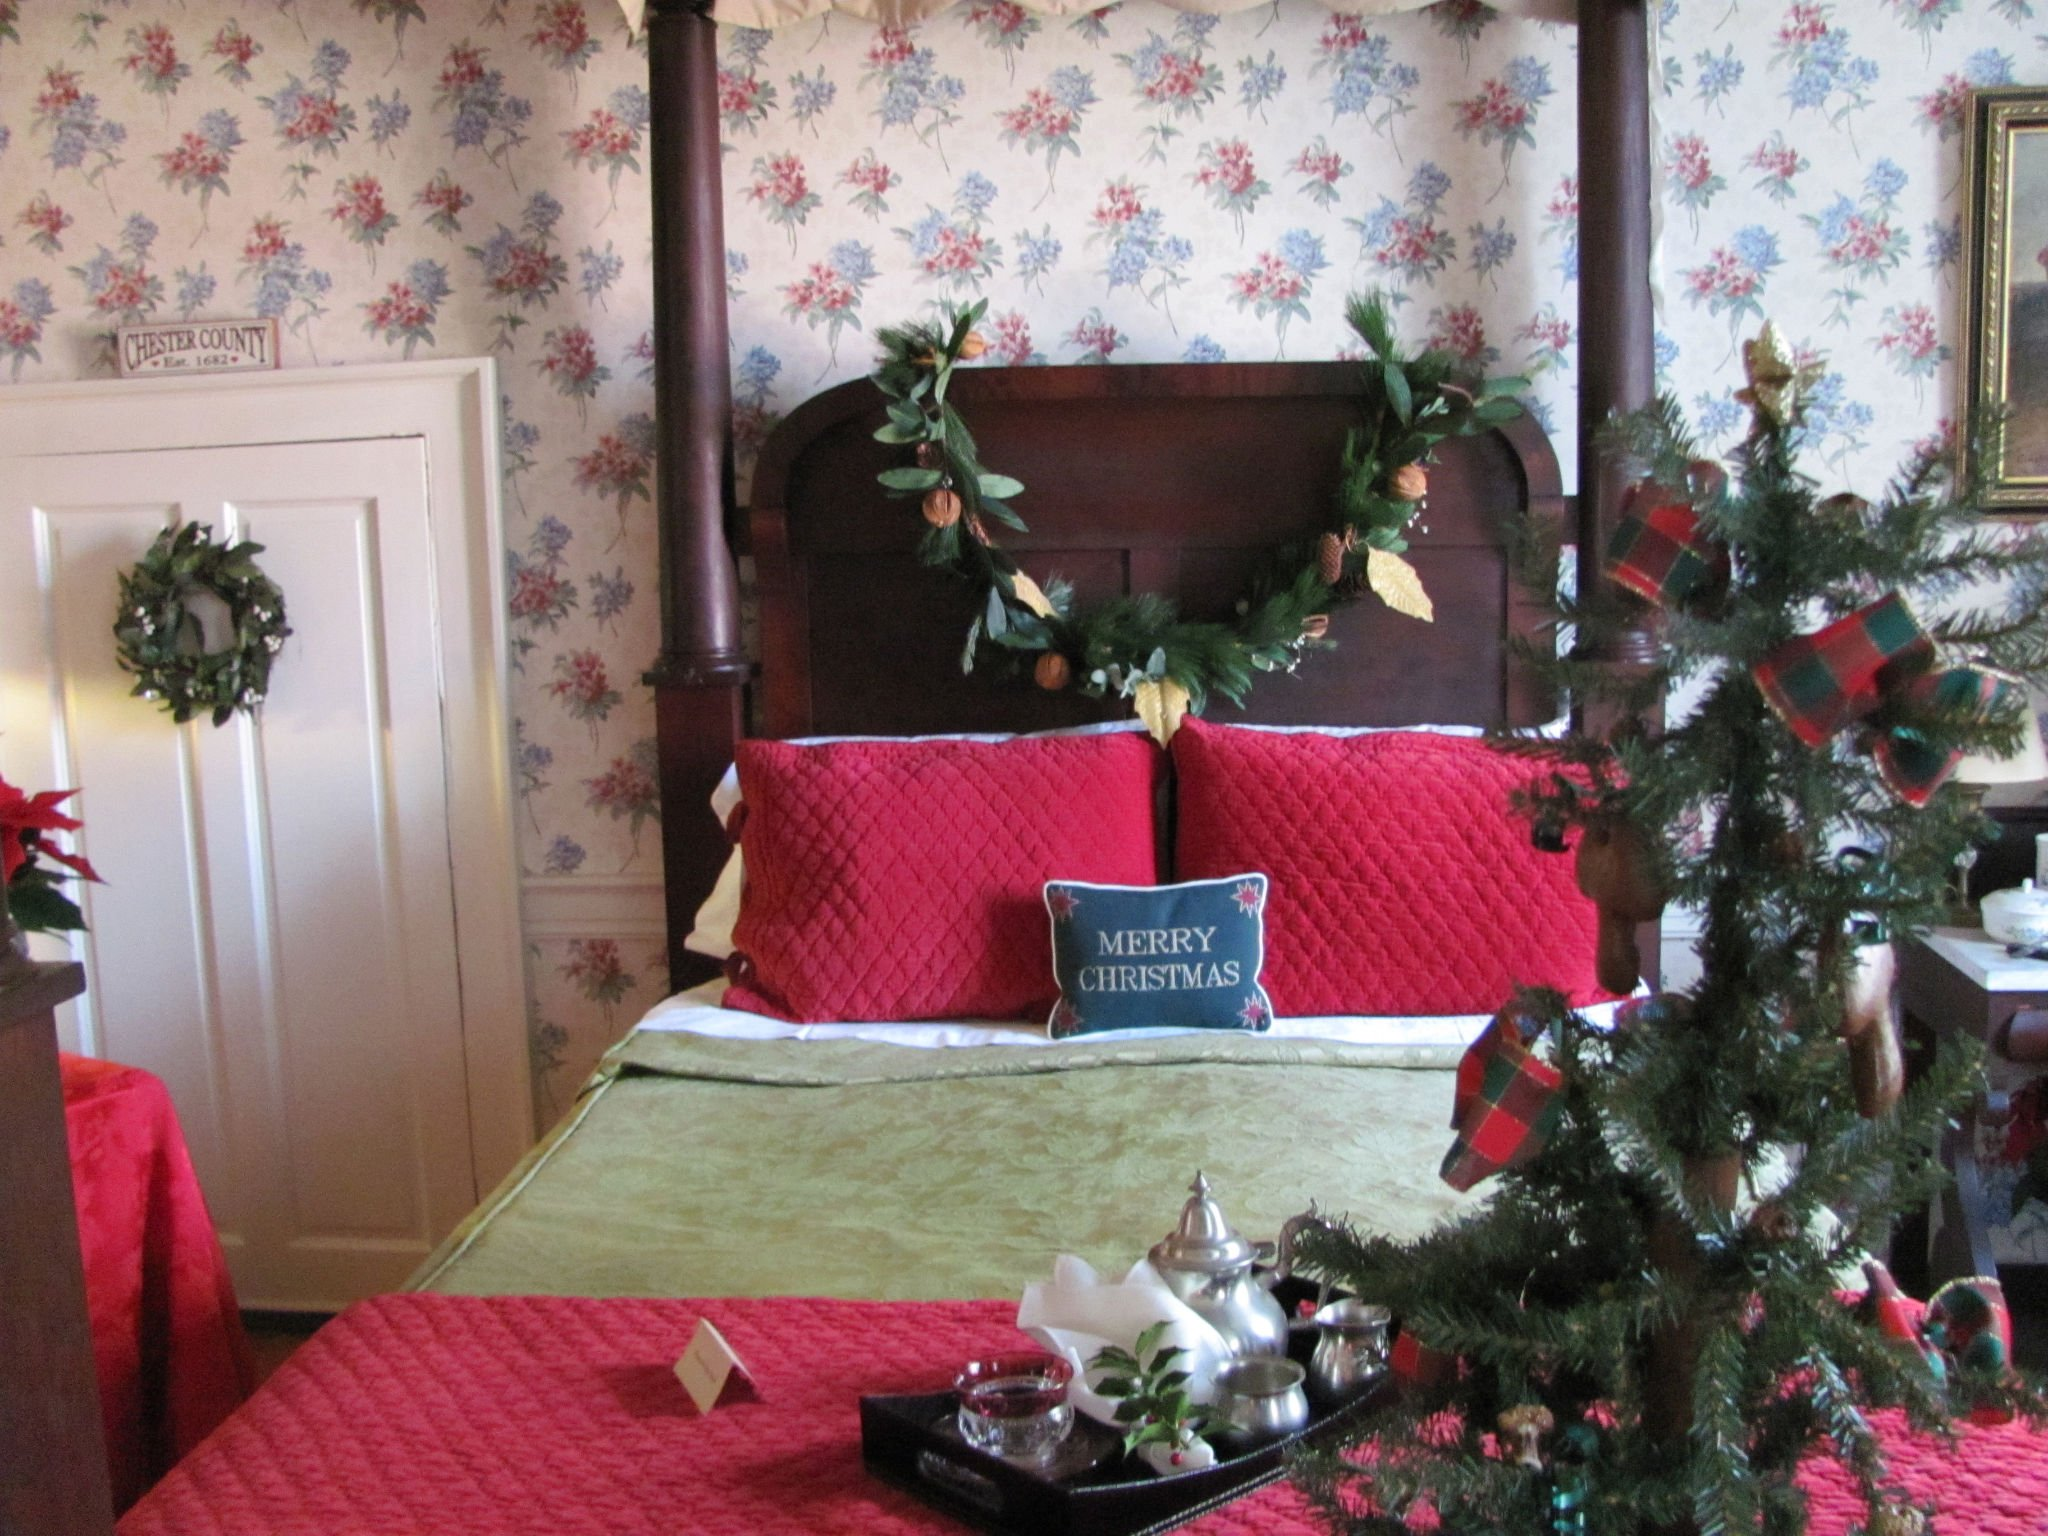 One of the bedrooms within the mansion decorated for the holidays.